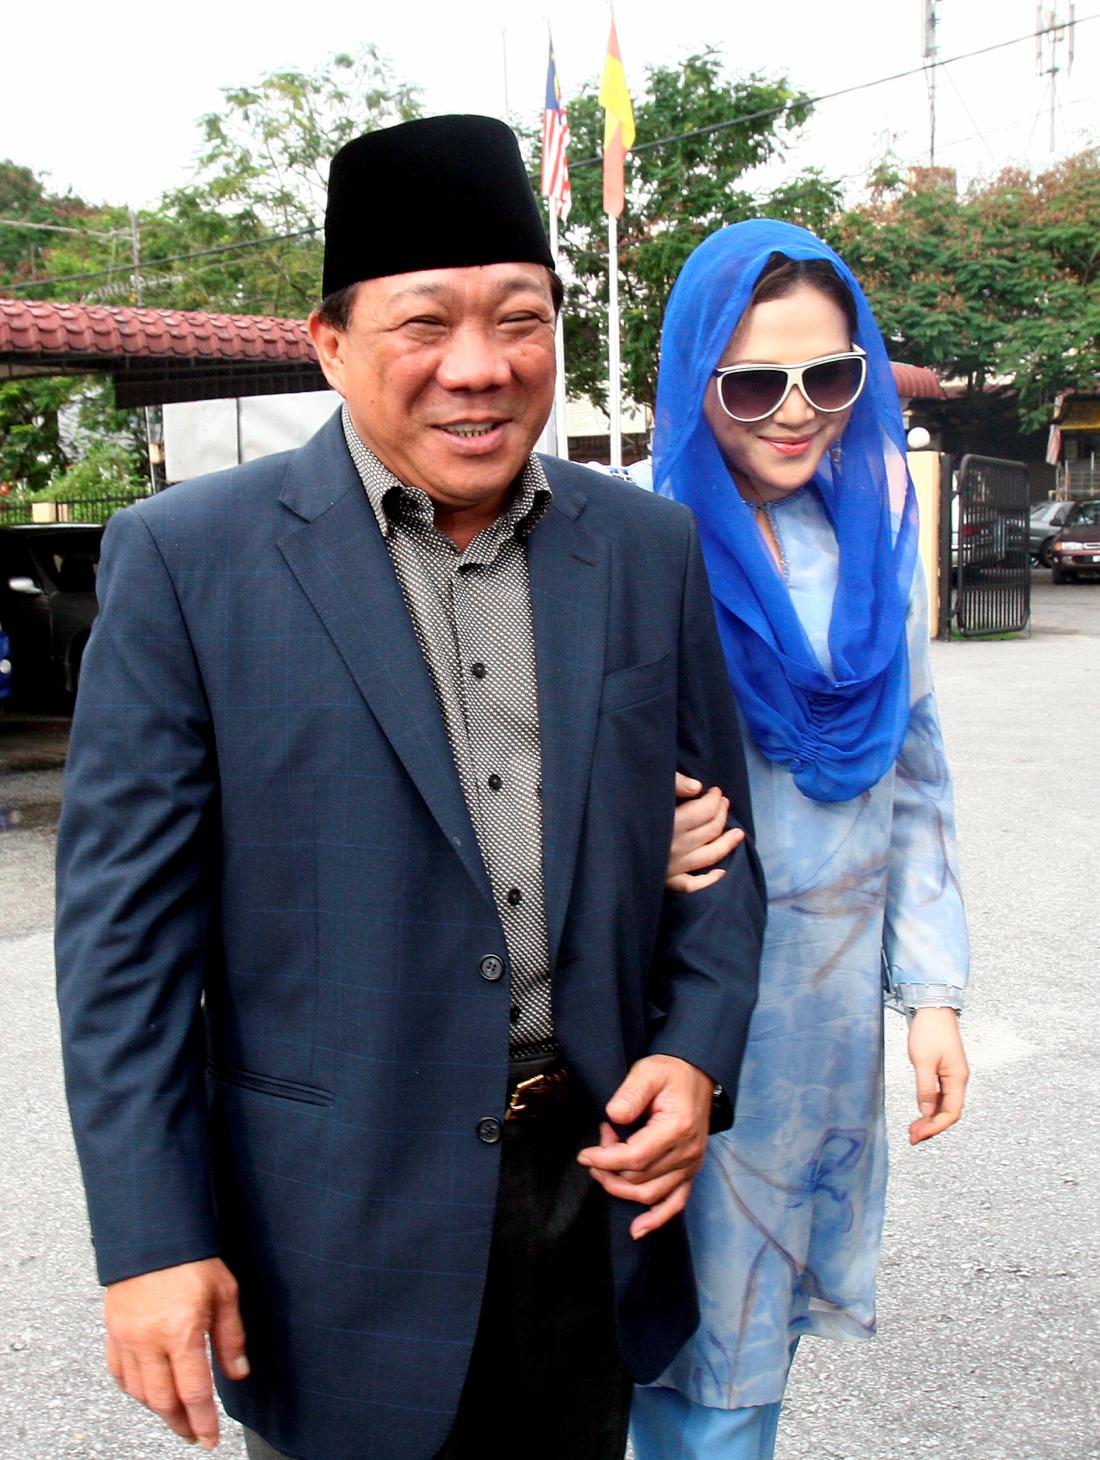 Malaysian lawmaker Bung Mokhtar Radin and his second wife Zizie Ezette arriving at a Shari'a court in Kuala Lumpur on May 19, 2010  Credit: AFP/AFP/Getty Images